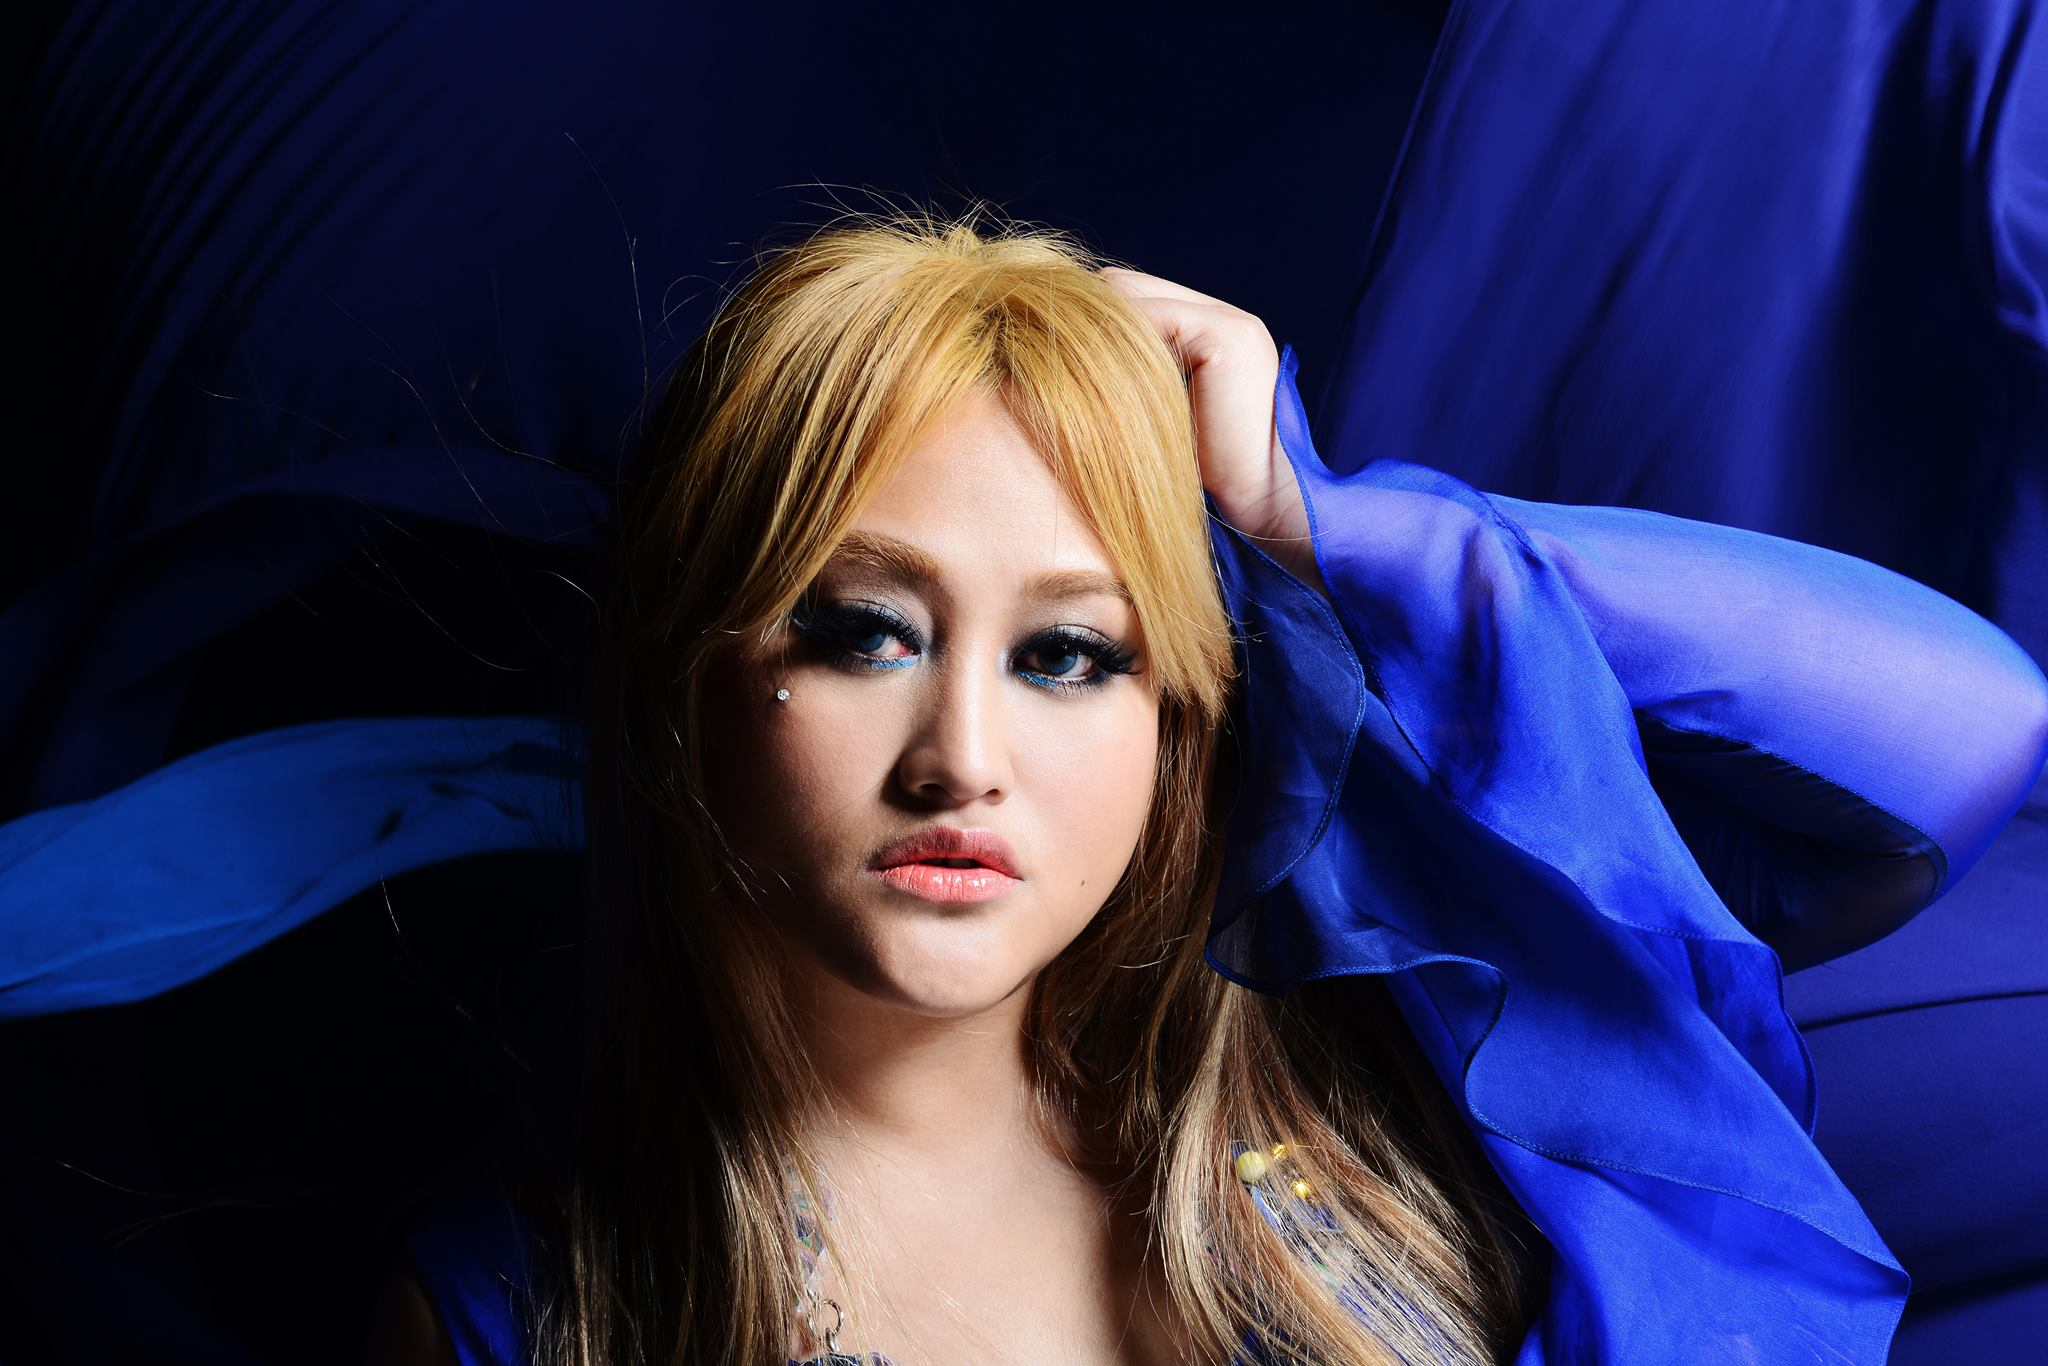 Jiajia bullied in her native Taiwan about her weight